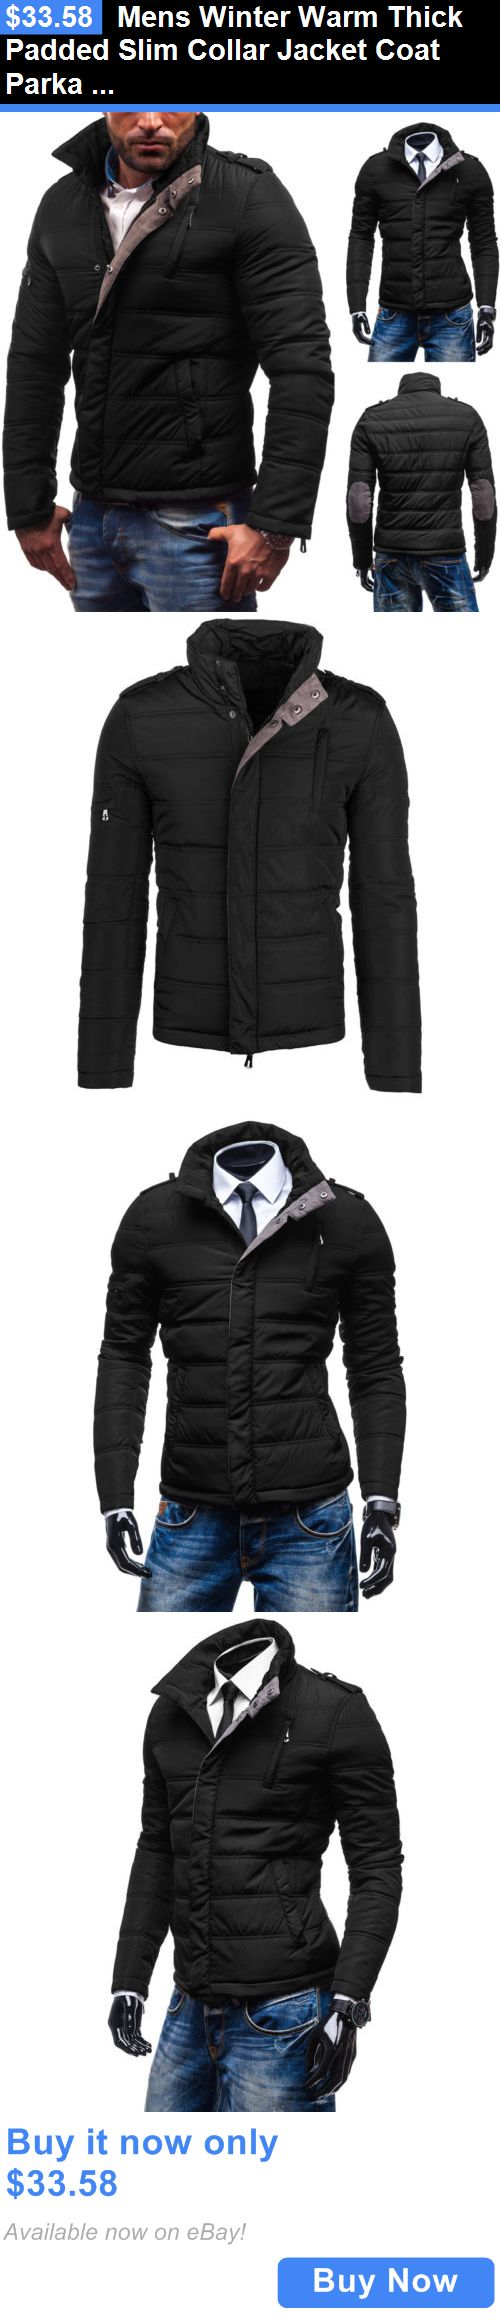 Men Coats And Jackets: Mens Winter Warm Thick Padded Slim Collar Jacket Coat Parka Winter Outwear Tops BUY IT NOW ONLY: $33.58